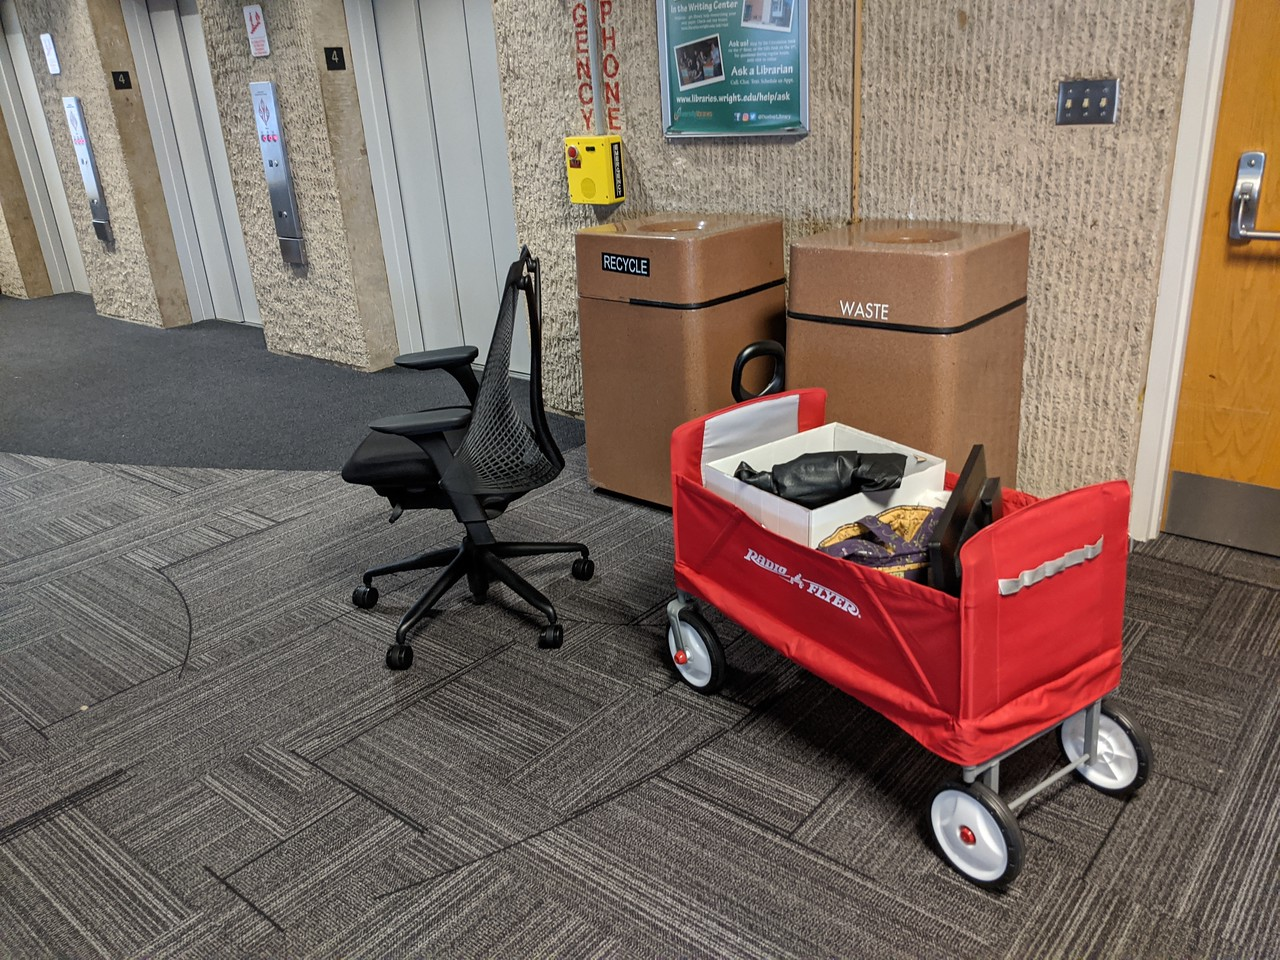 Desk chair and wagon, headed for the elevator in Dunbar Library, March 20, 2020